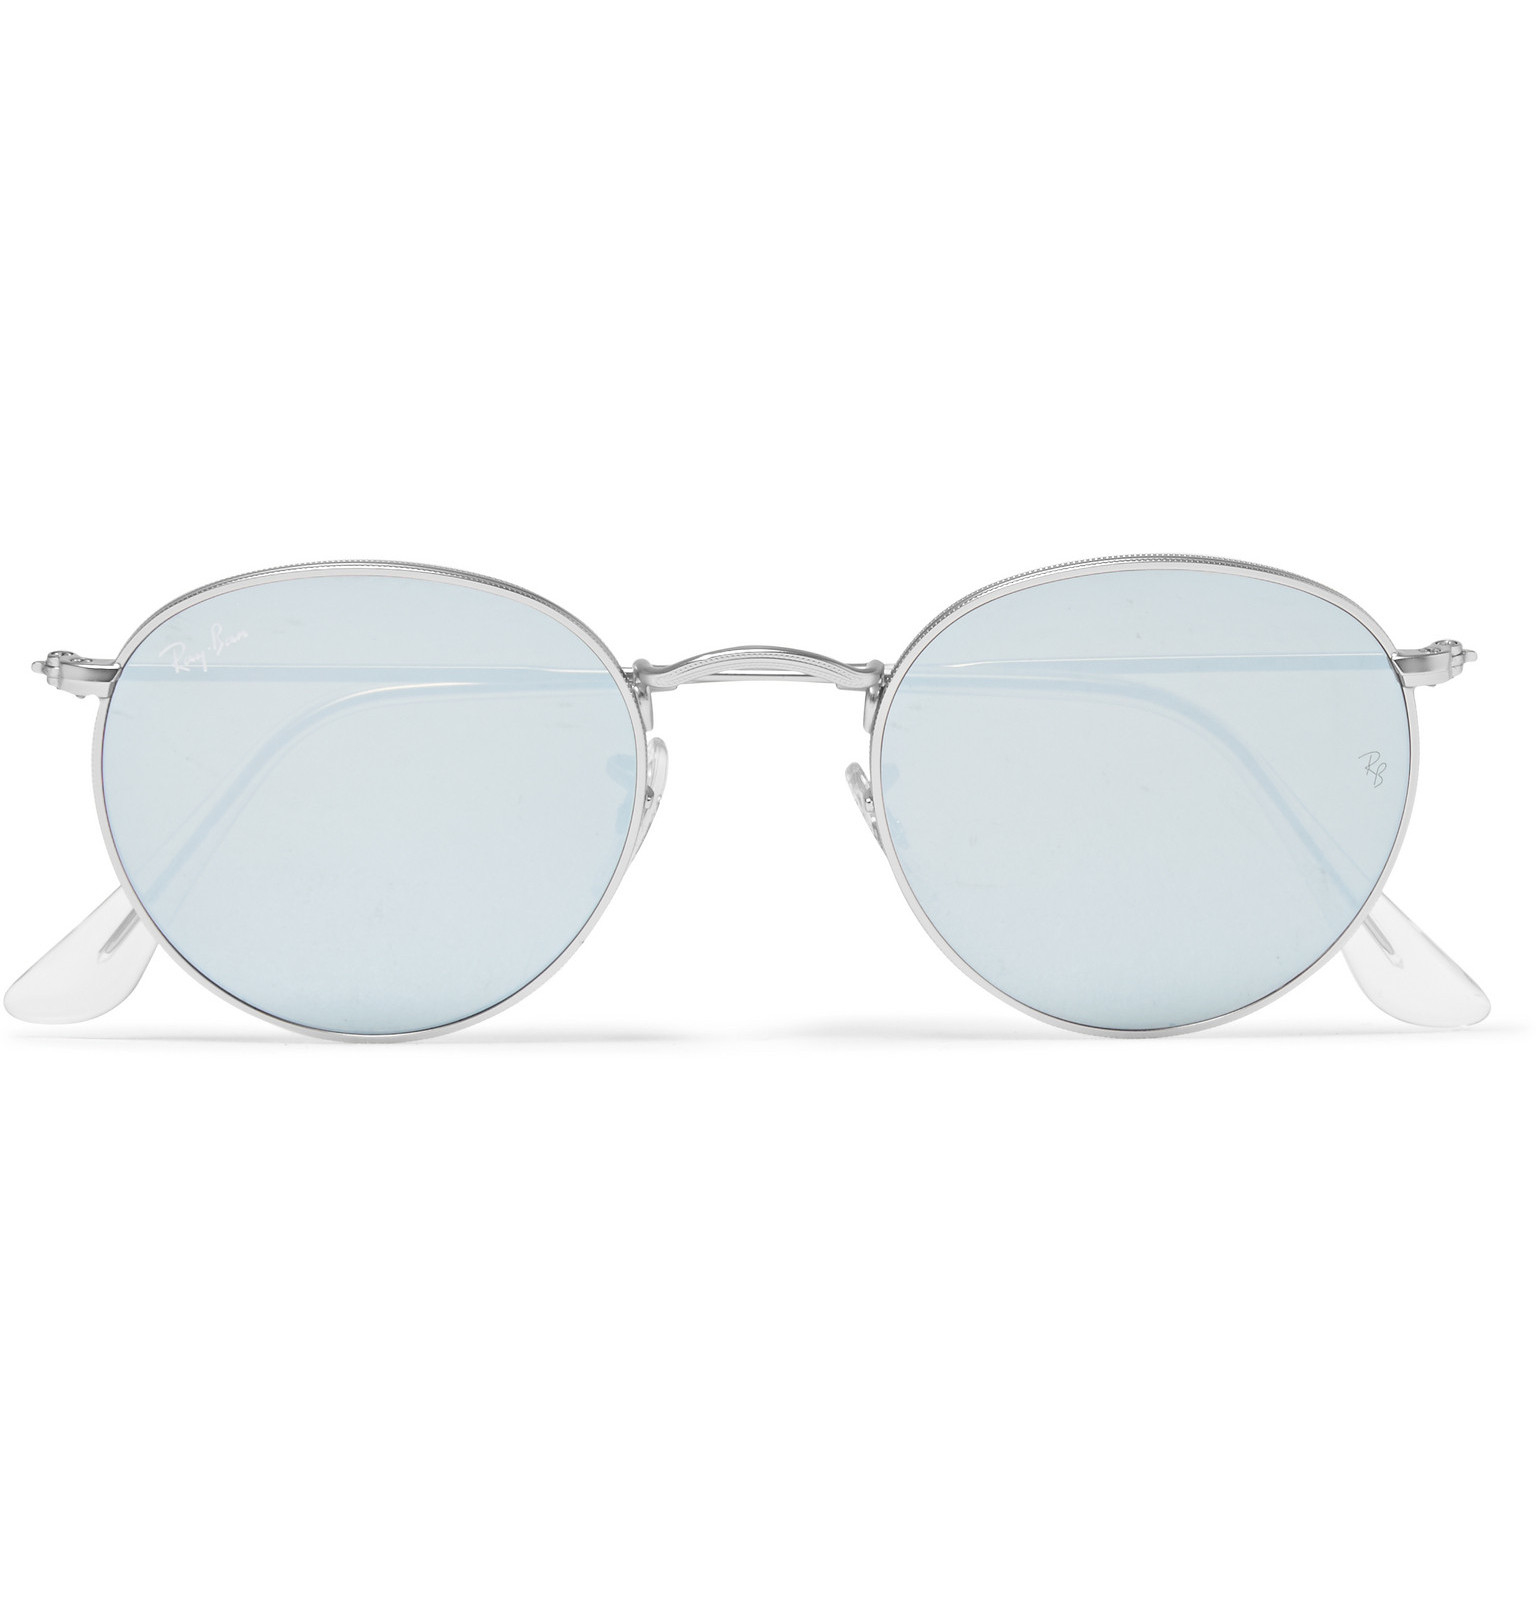 Ray Ban Round Frame Silver Tone Mirrored Sunglasses In